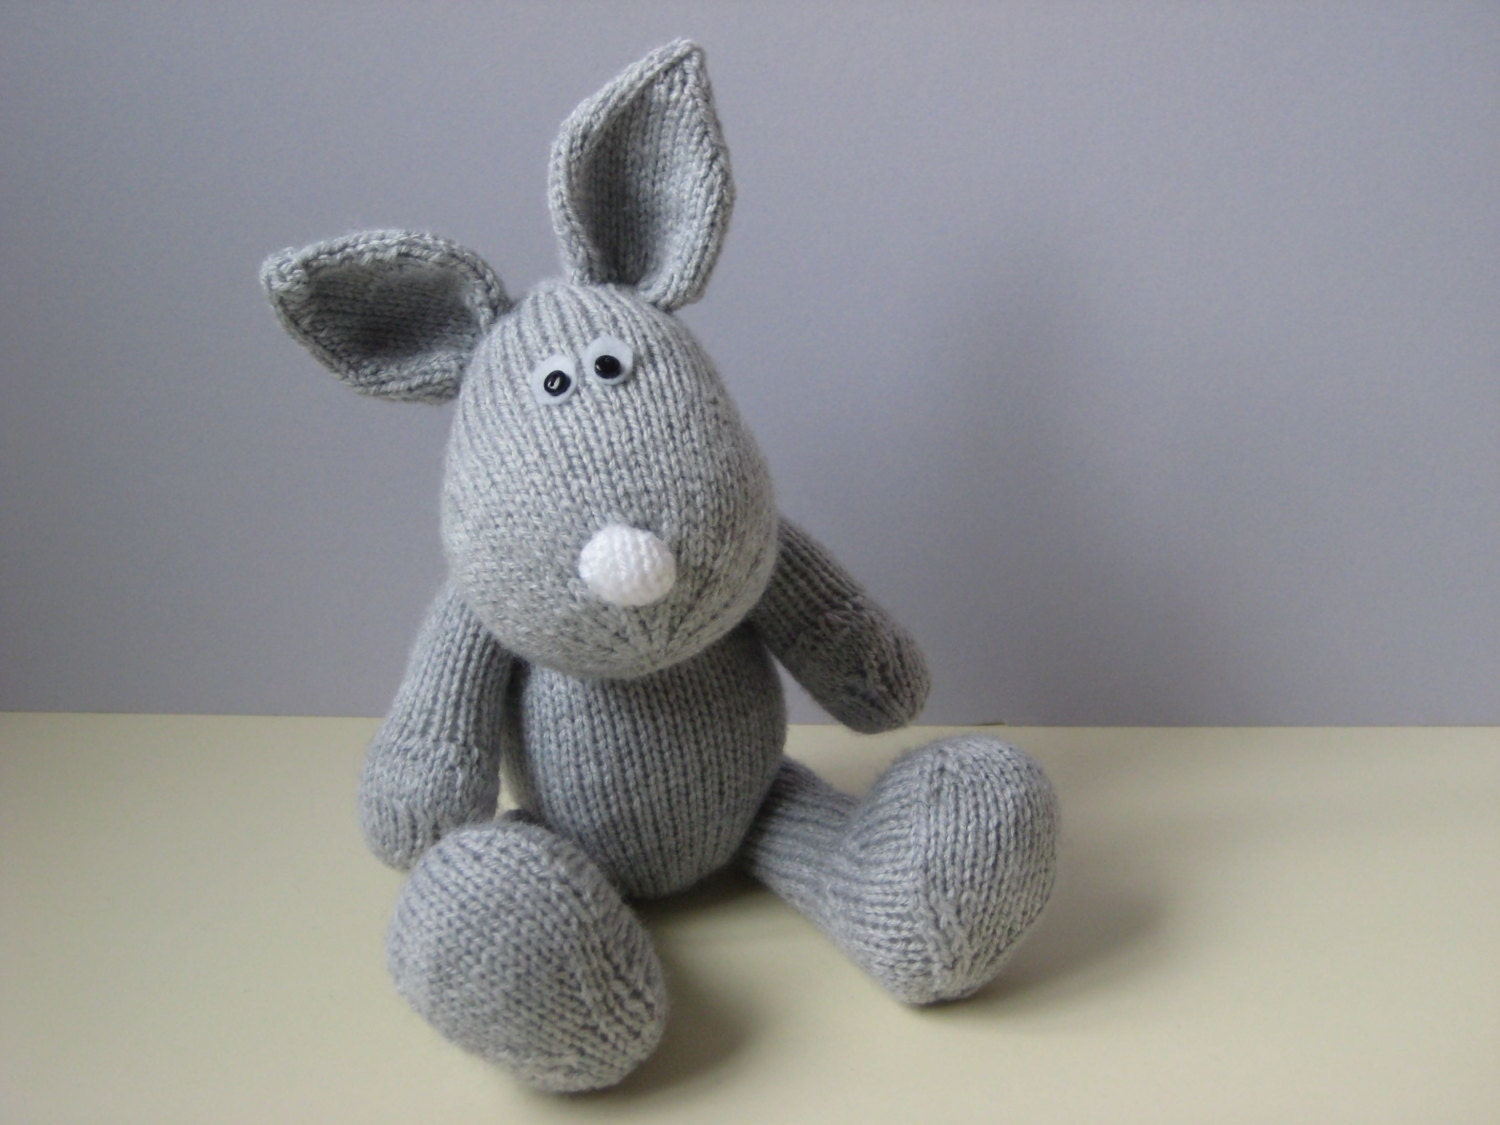 Knitting Patterns For Toy Rabbits : Henry Rabbit toy knitting patterns by fluffandfuzz on Etsy